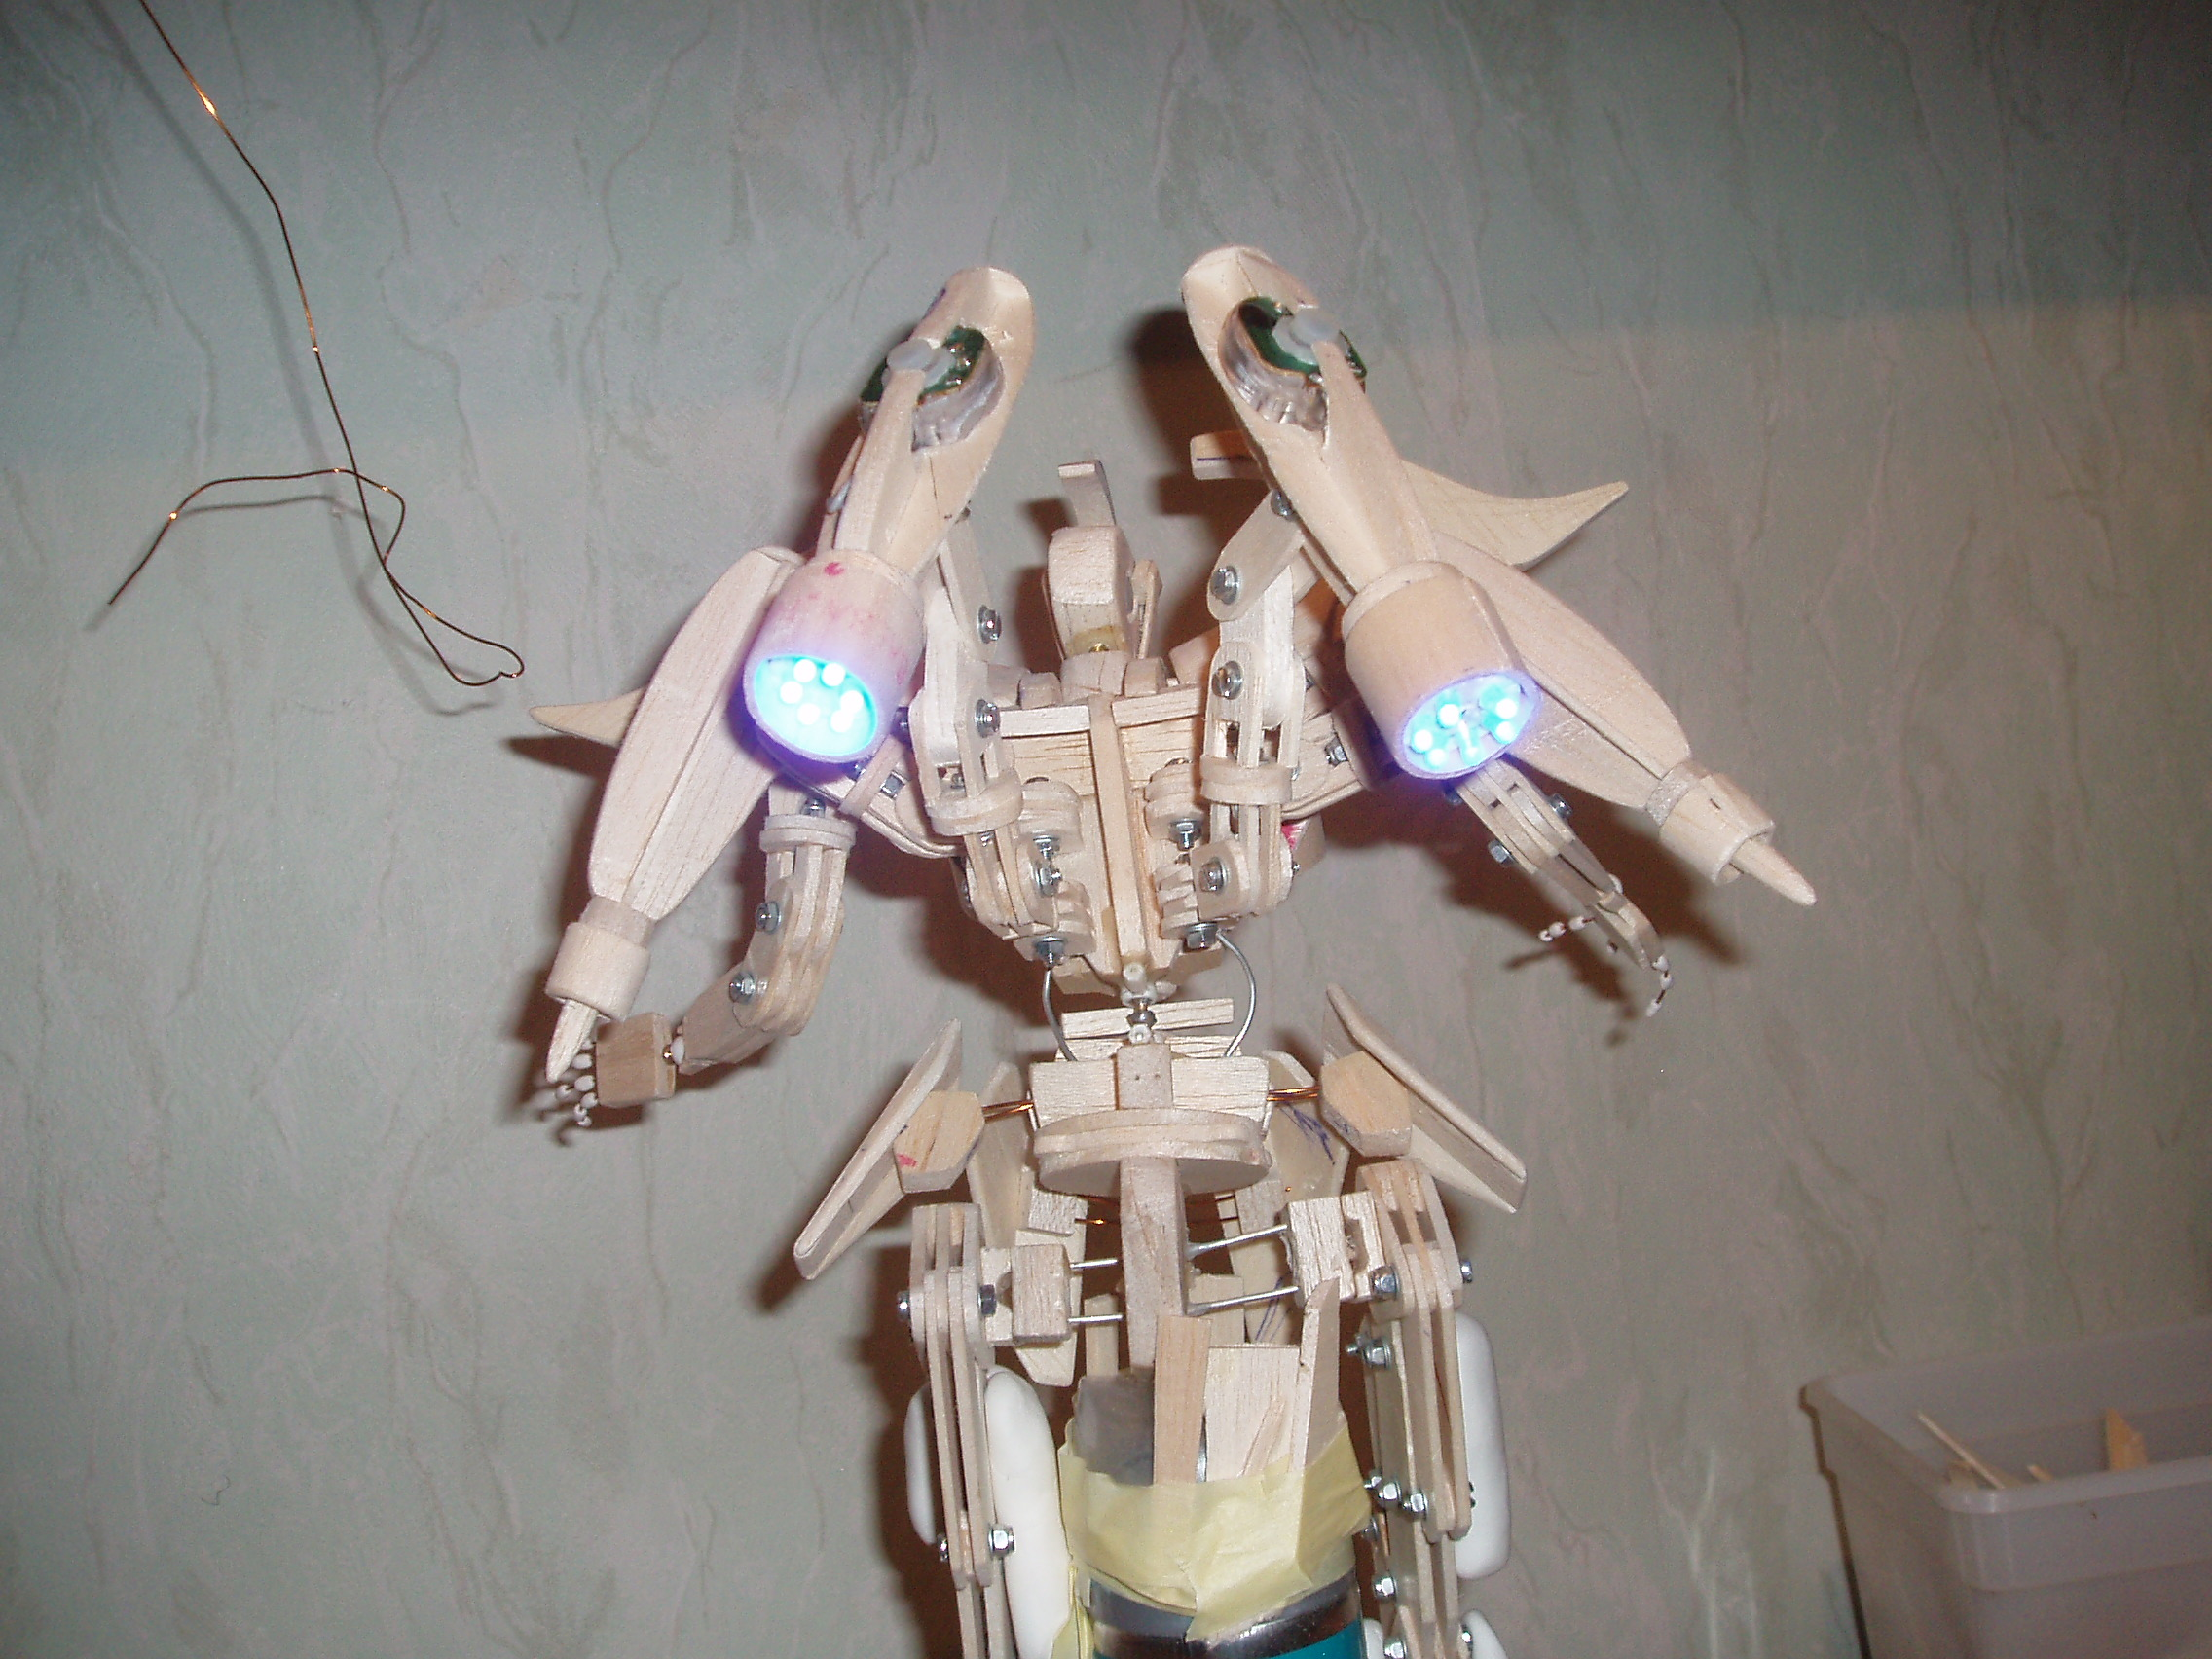 Picture of More Jetpack Fun! With LED's